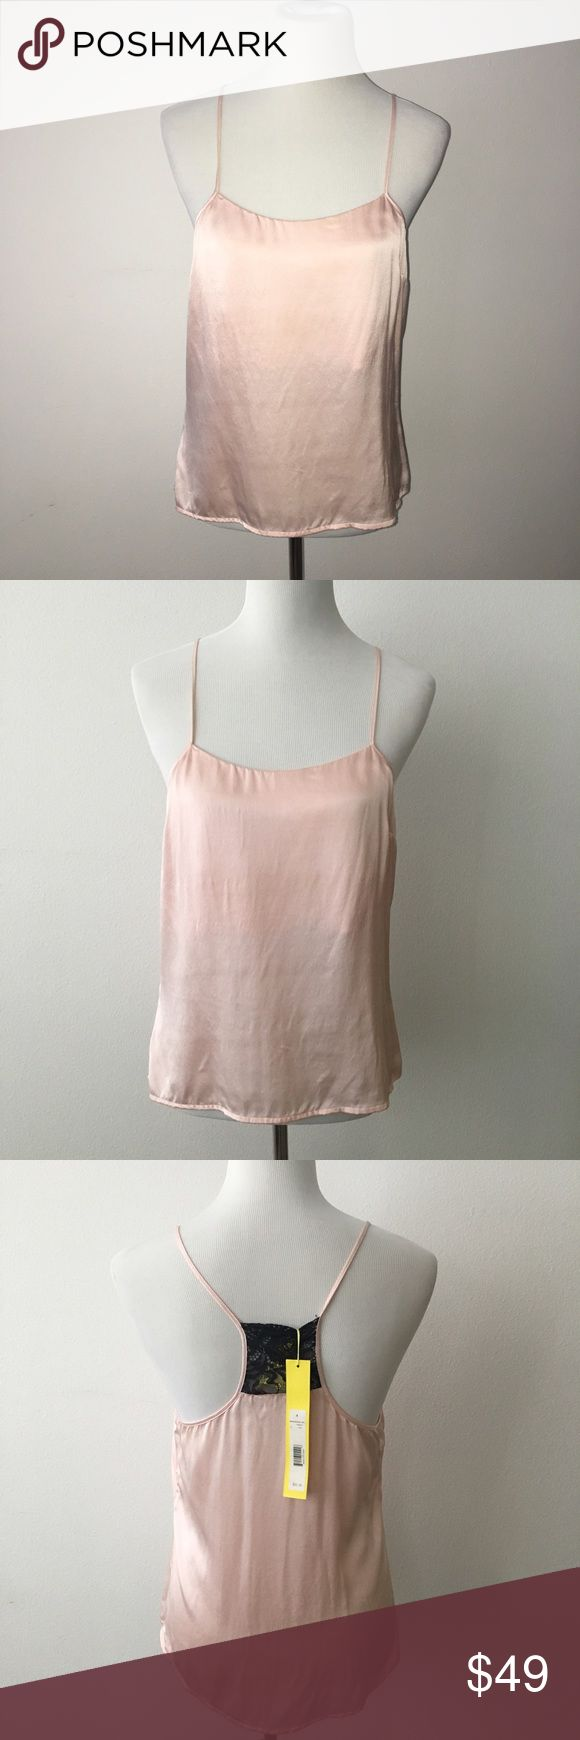 💞 Catherine Malandrino Blush Pink Silk Top 💞 Timeless and elegant. Never worn. This pink is so classic that it is like a neutral for your wardrobe, and this is a staple for a variety of outfits. Catherine Malandrino Tops